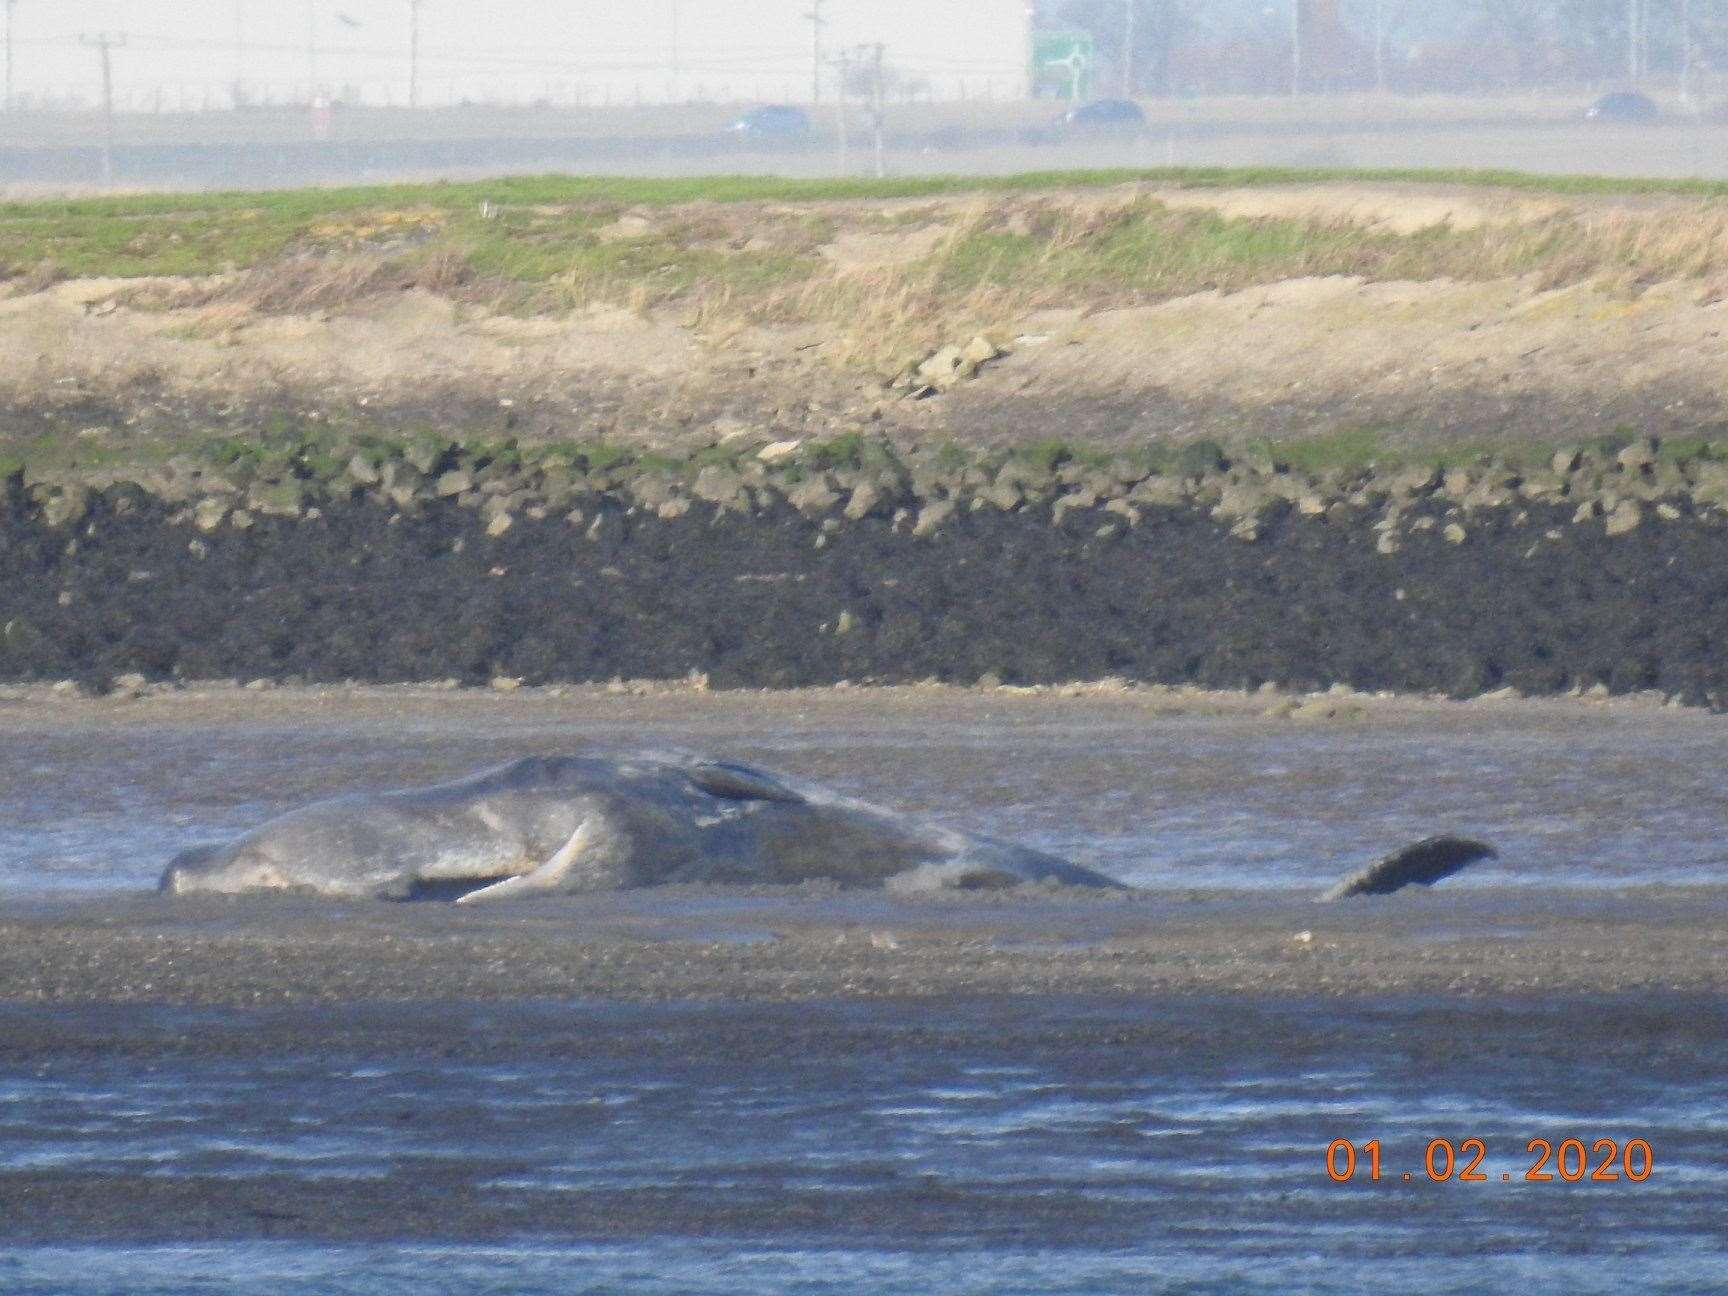 Dead whale on the Sheppey coast at Elmley. Picture: Lorraine St John, Kent Wildlife Rescue Services